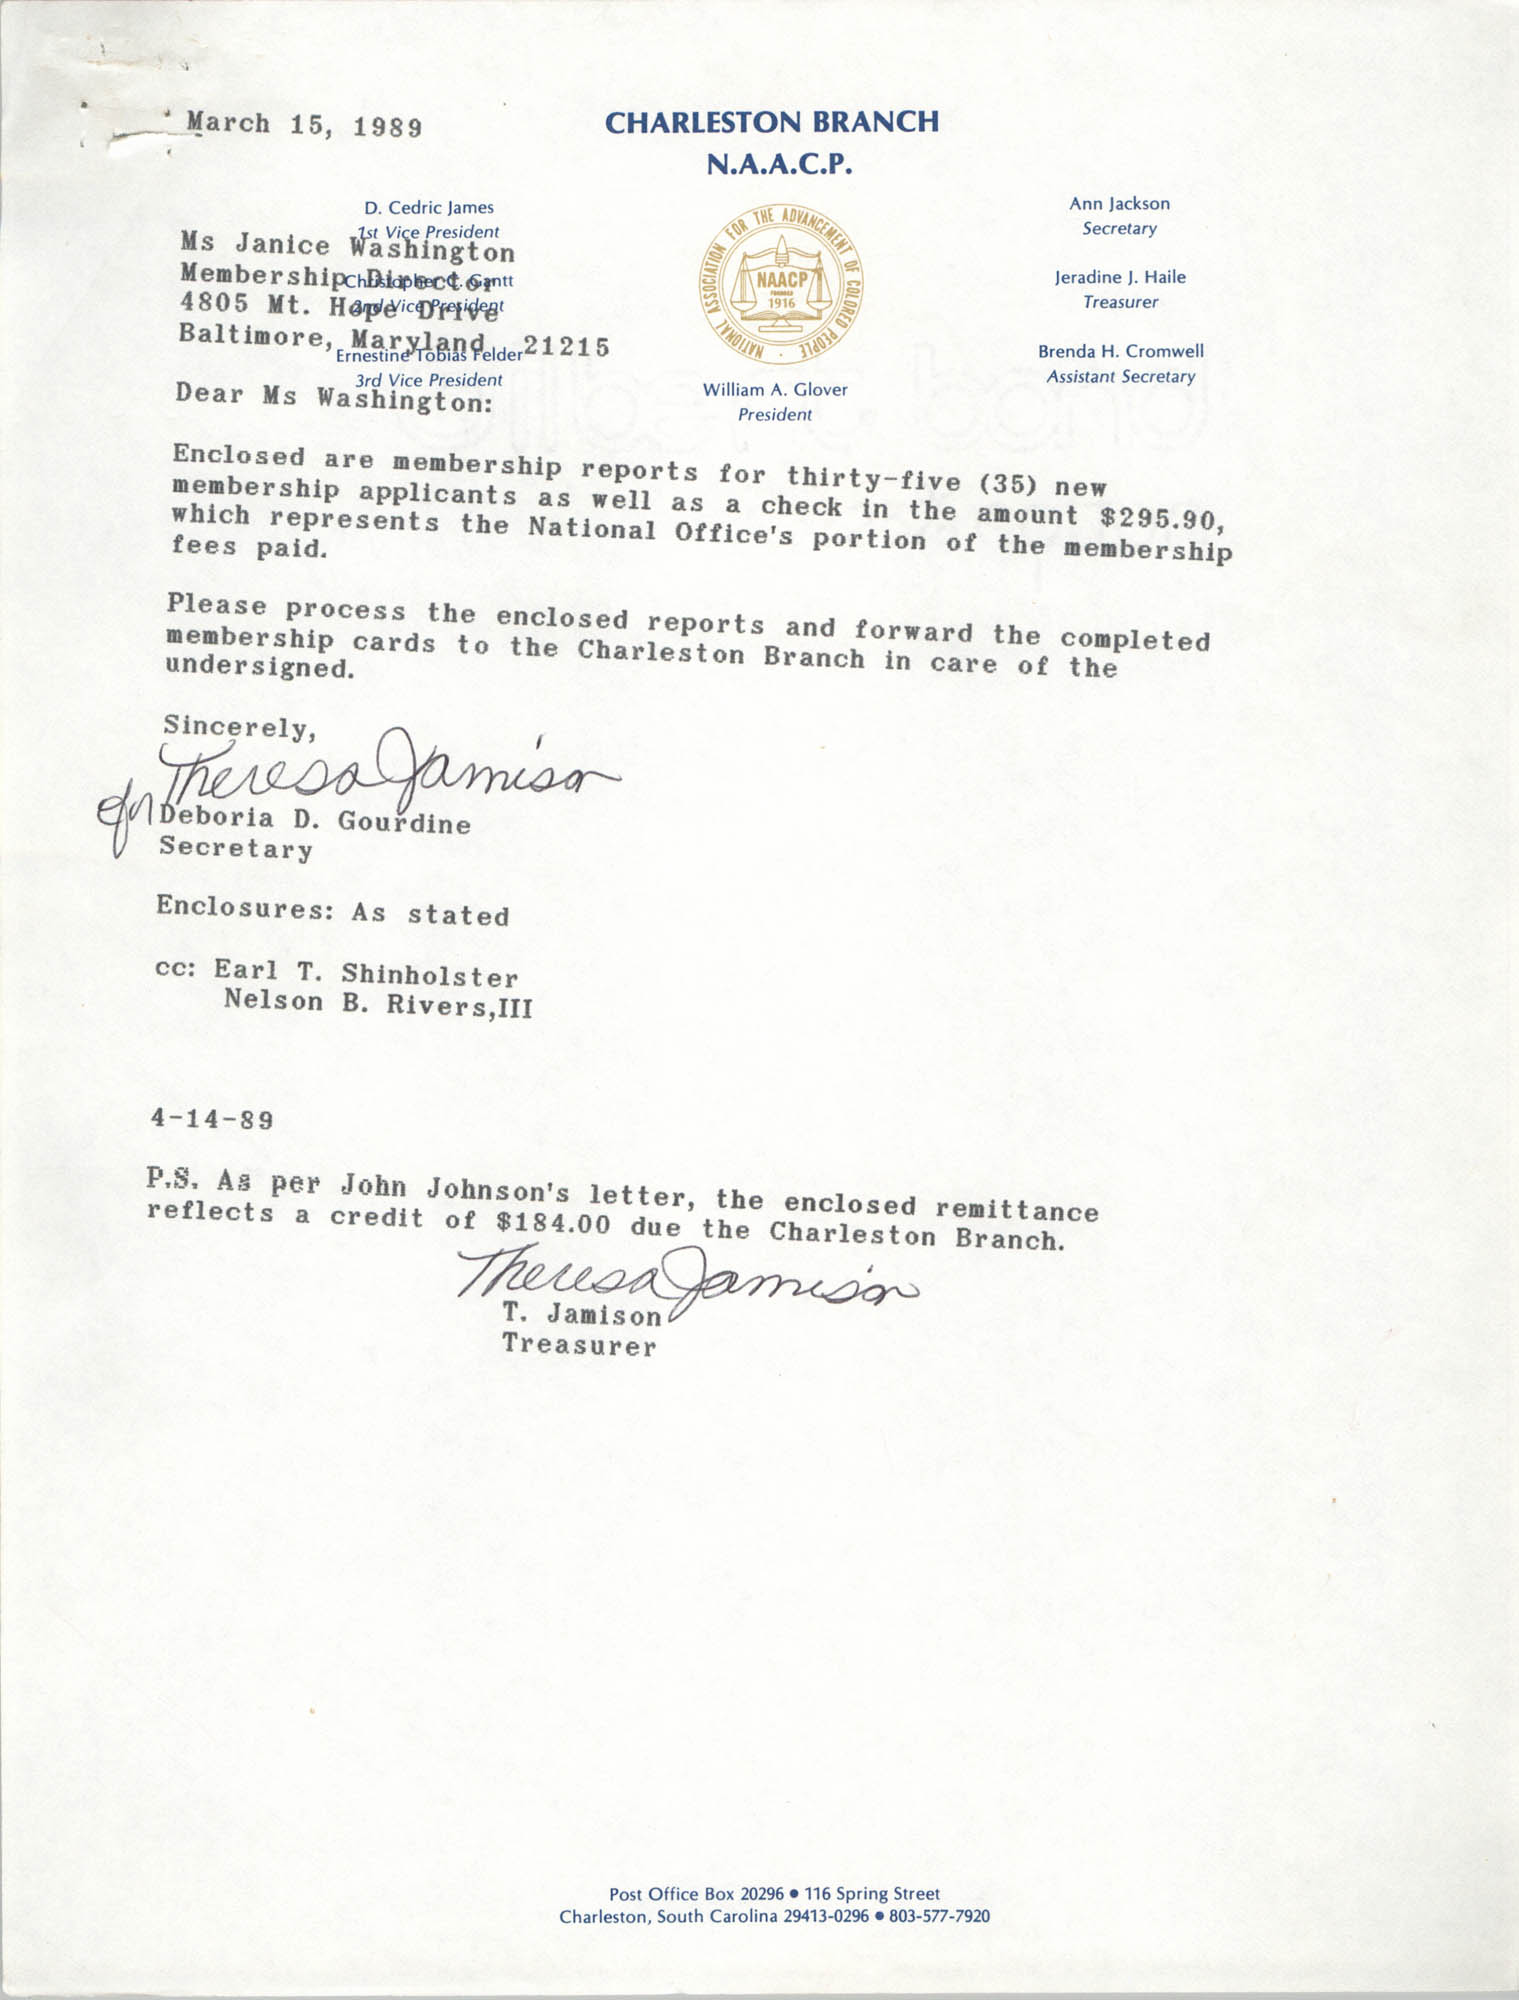 Letter from Deboria D. Gourdine to Janice Washington, NAACP, March 15, 1989